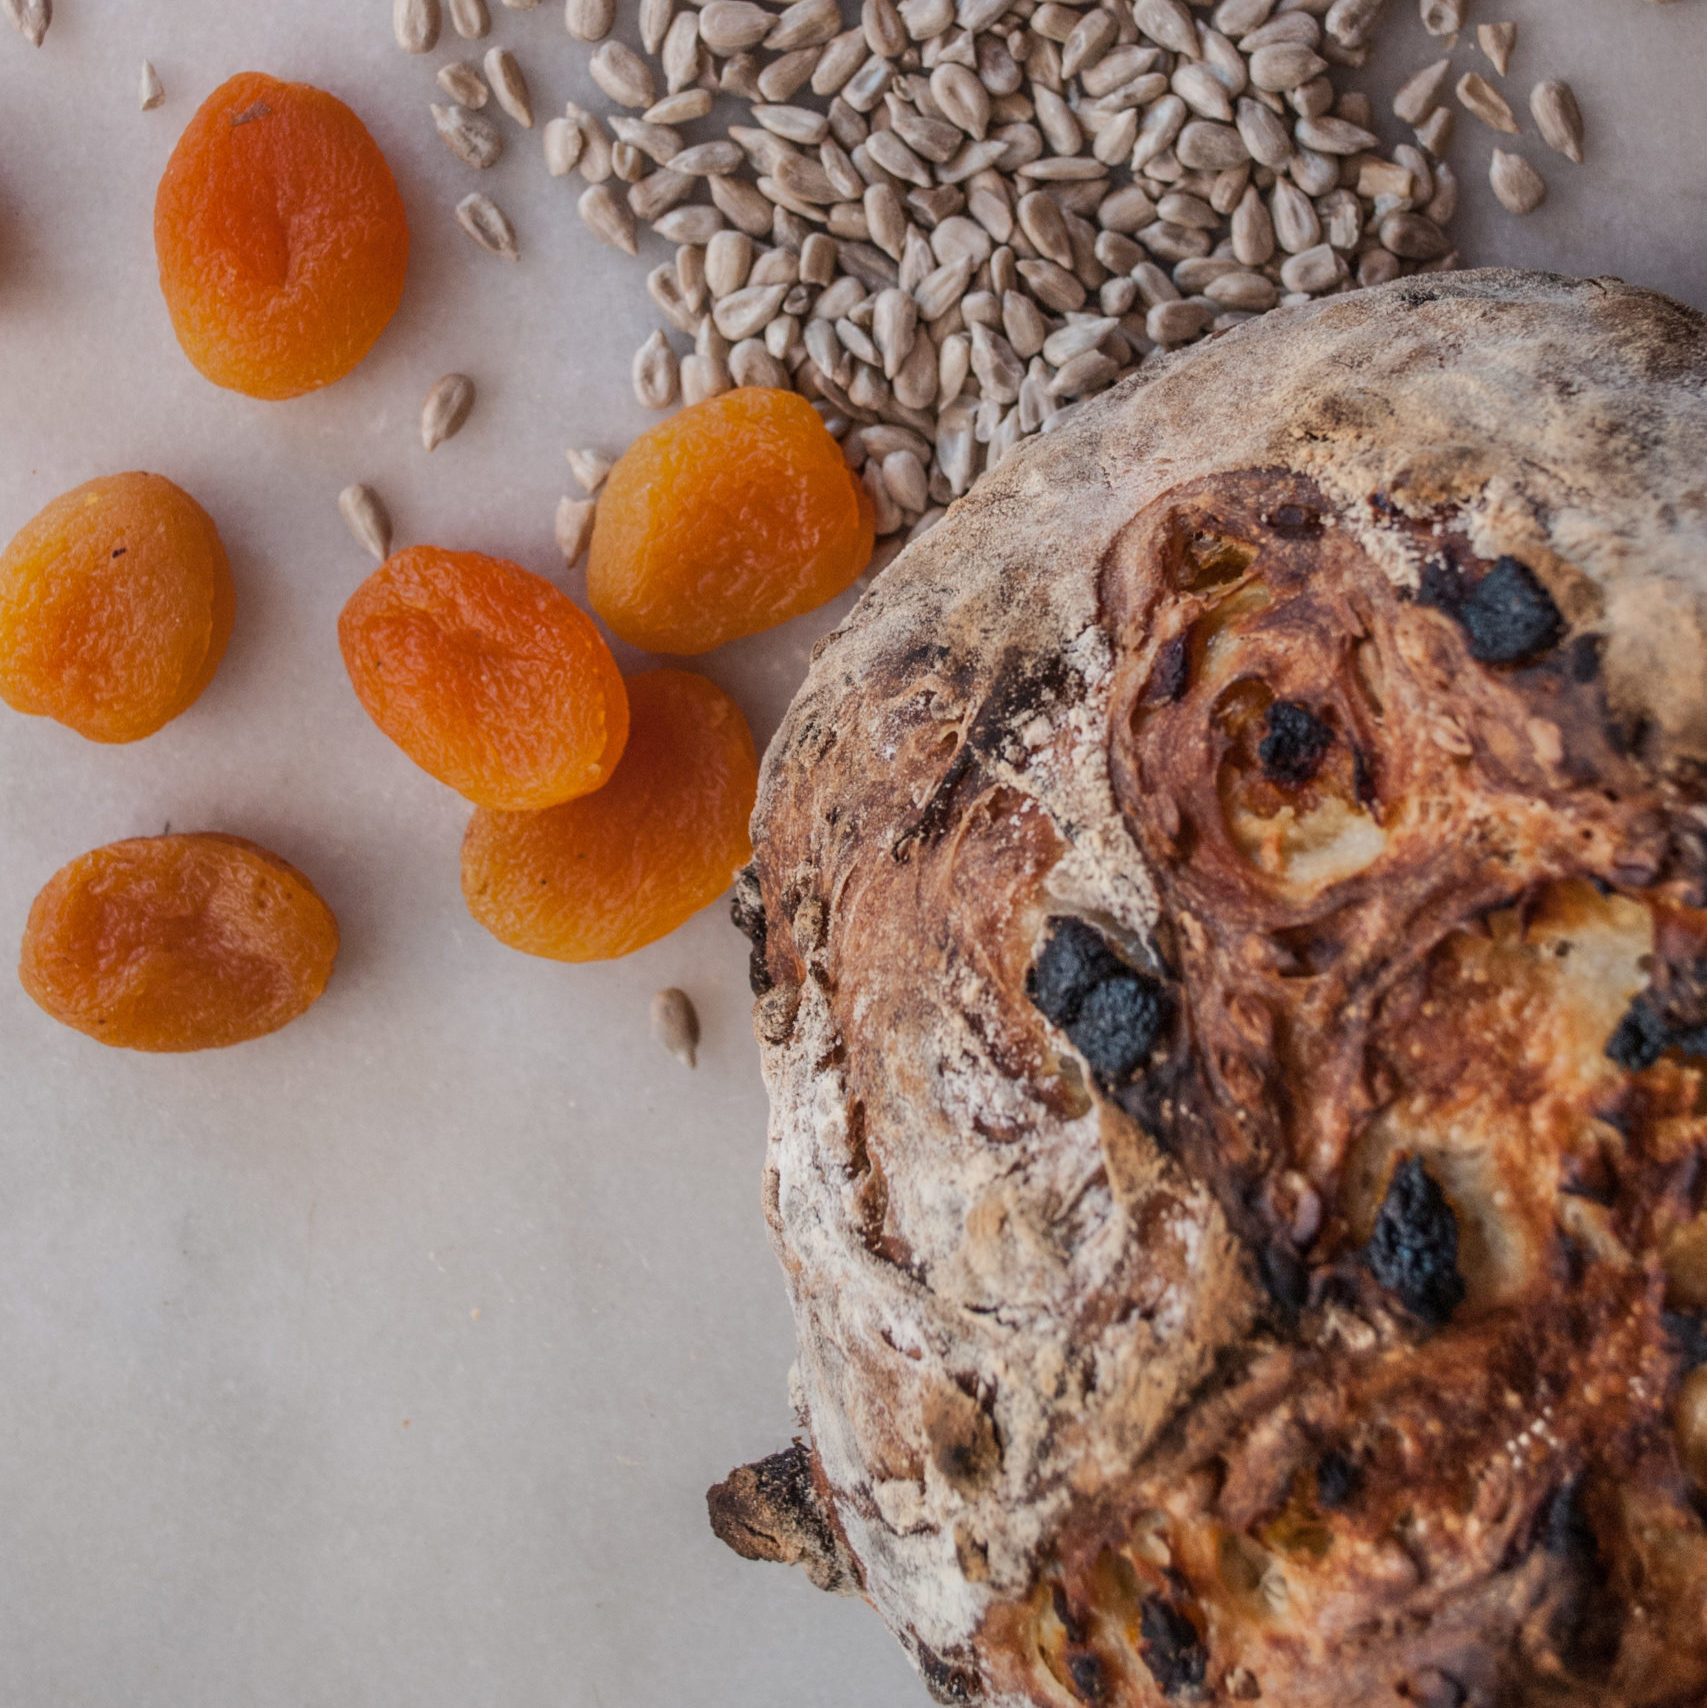 Easy Artisan Bread Recipe that anyone can make! Filled with apricot and sunflower kernels, or the fruit and nuts of your choice. Simple ingredients and easy to follow tutorial. Perfect for Holiday baking or Thanksgiving!